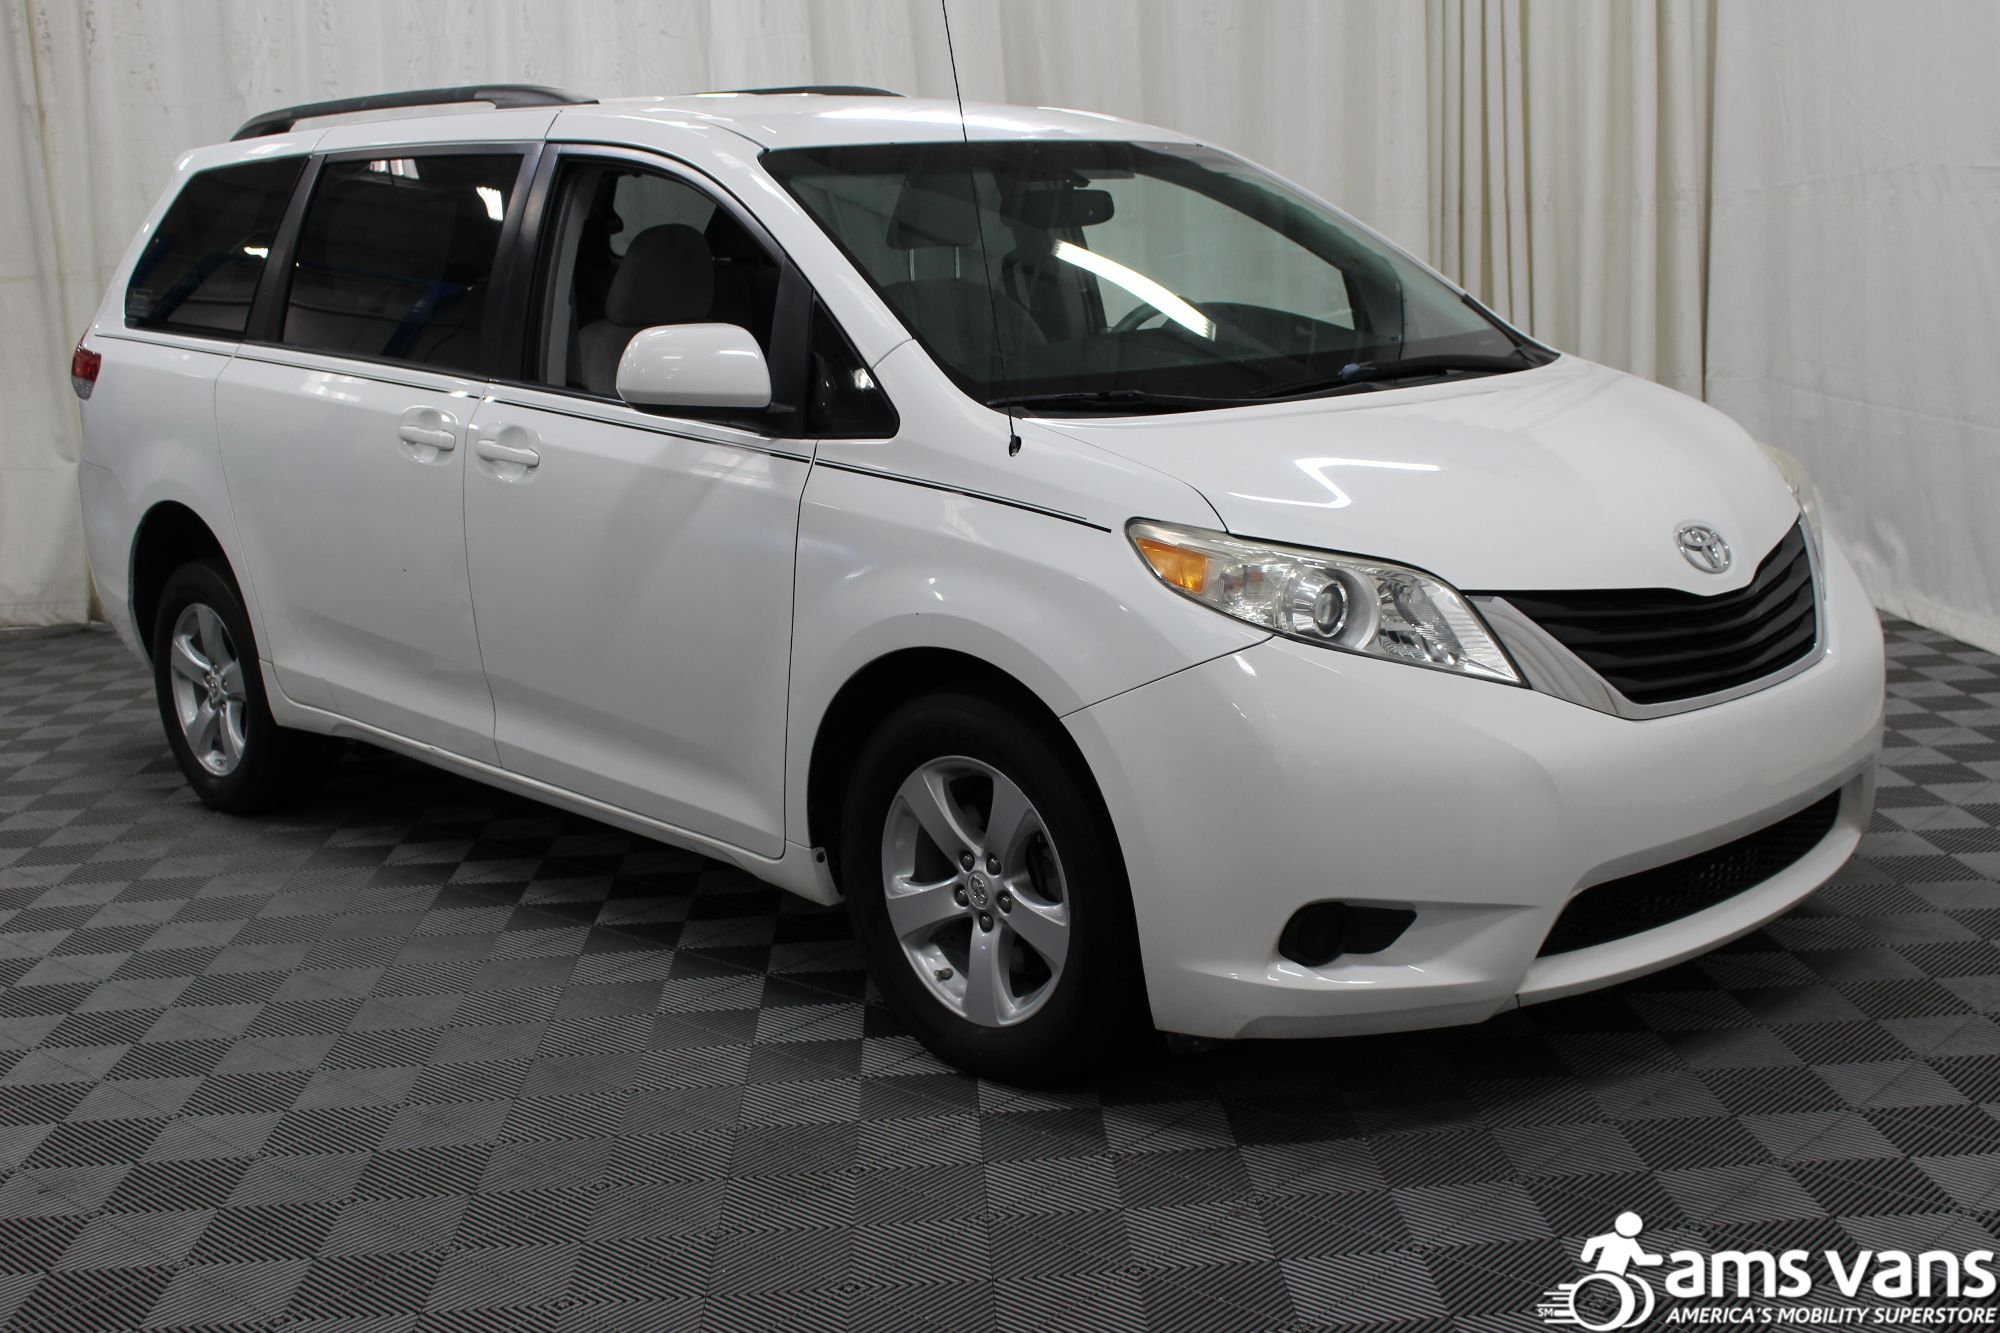 2011 toyota sienna wheelchair van for sale 26 995. Black Bedroom Furniture Sets. Home Design Ideas